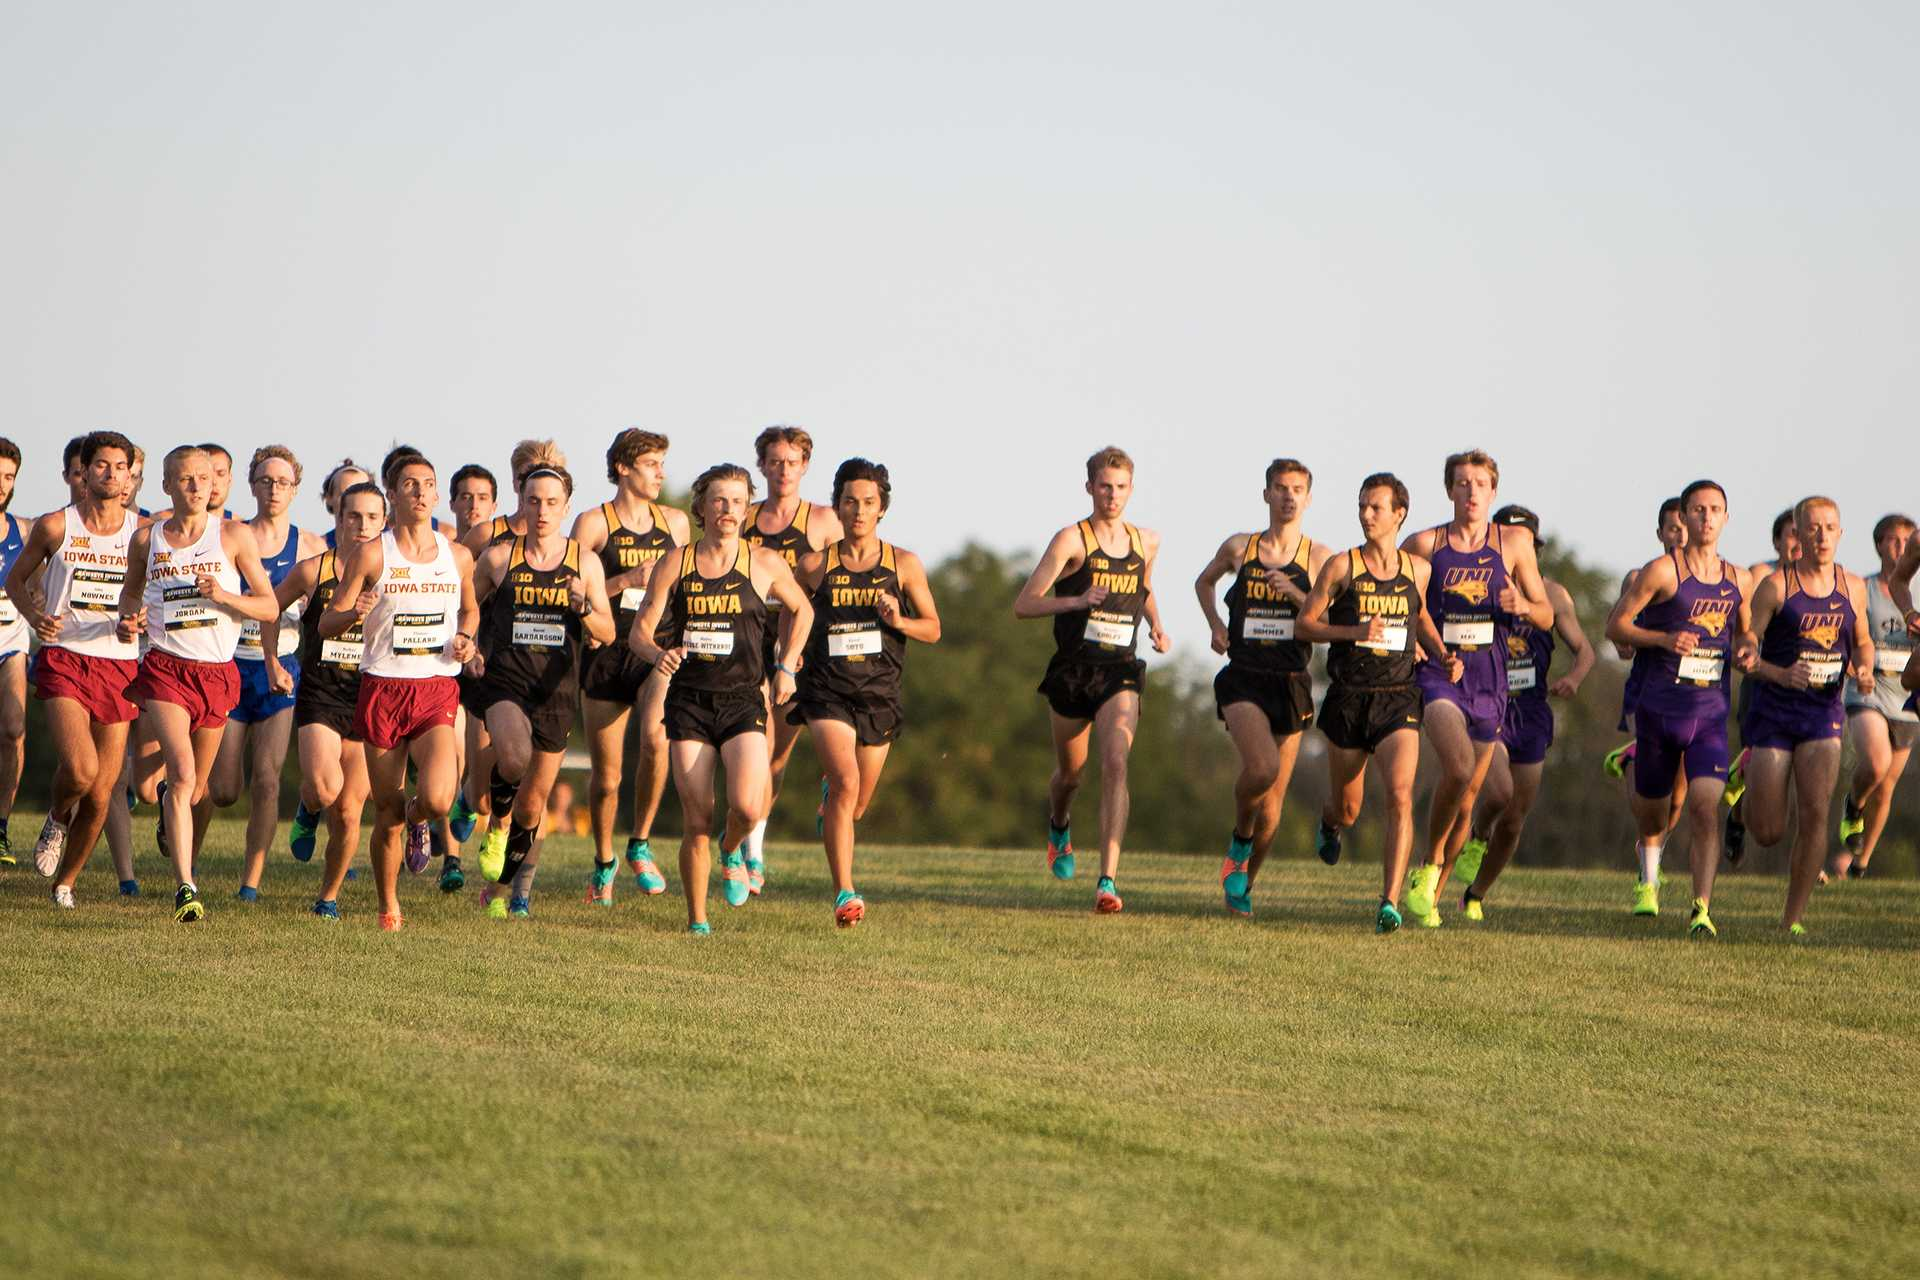 The Iowa Men's Cross Counntry Team springs away from the starting boxes at the Hawkeye Invitational Cross Country meet on Friday, September 1, 2017. (David Harmantas/The Daily Iowan)